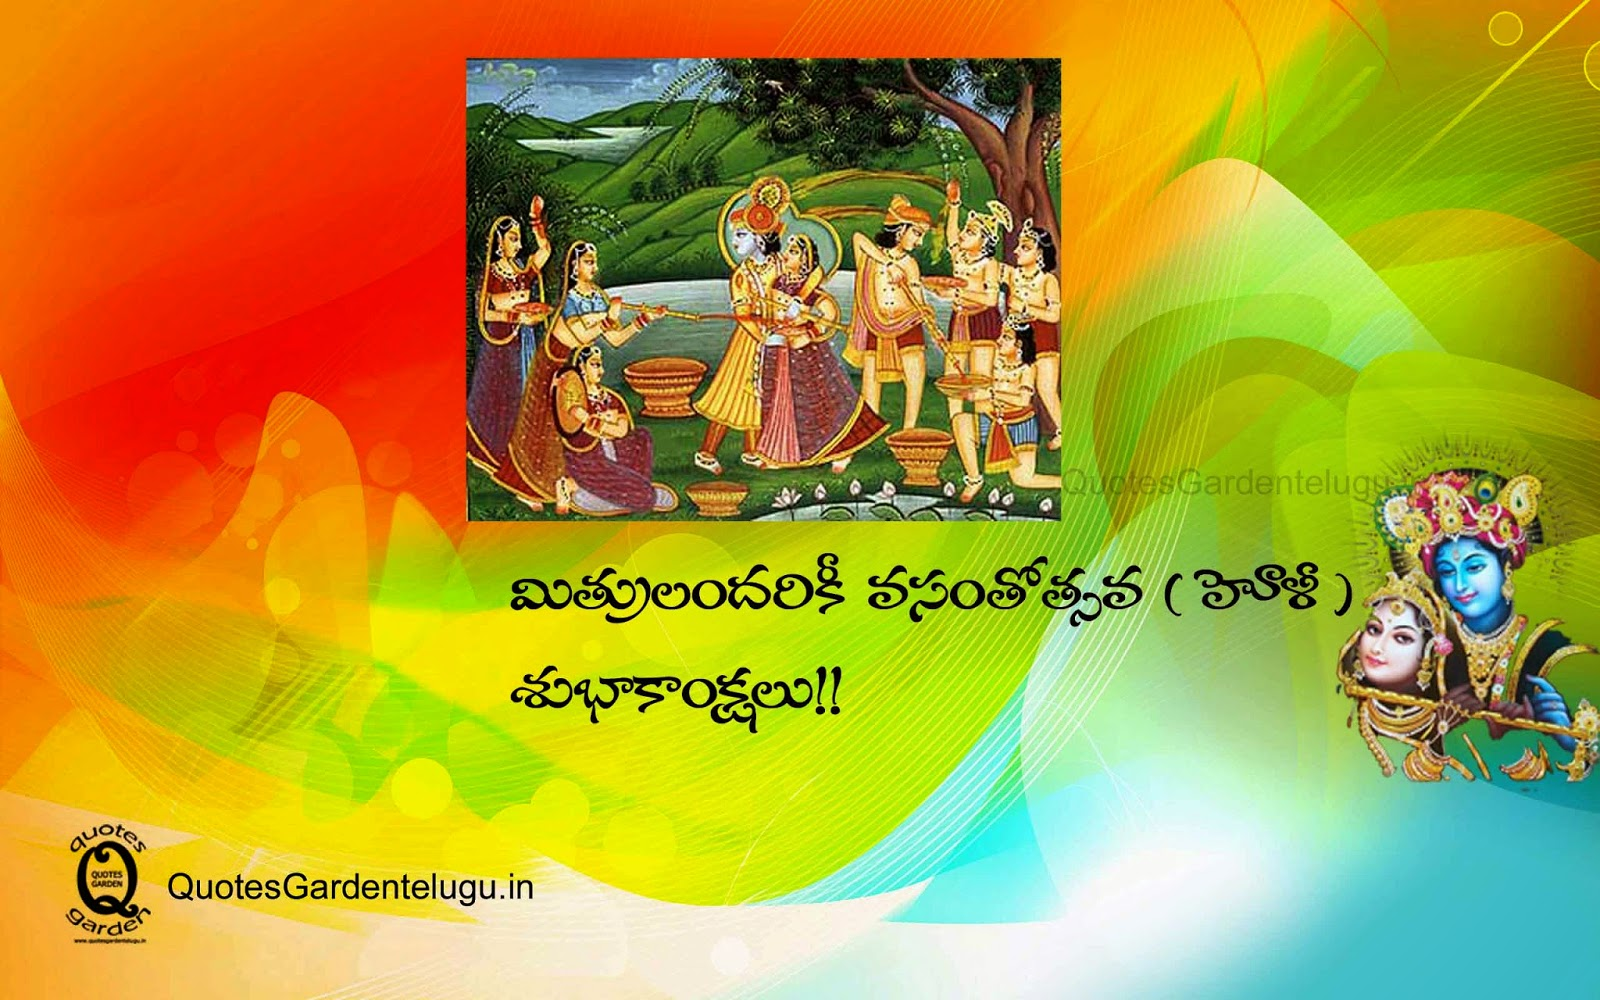 holi wishes sms in telugu, holi greeting cards in telugu, holi wishes in telugu, happy holi wishes in telugu, holi wishes messages in telugu